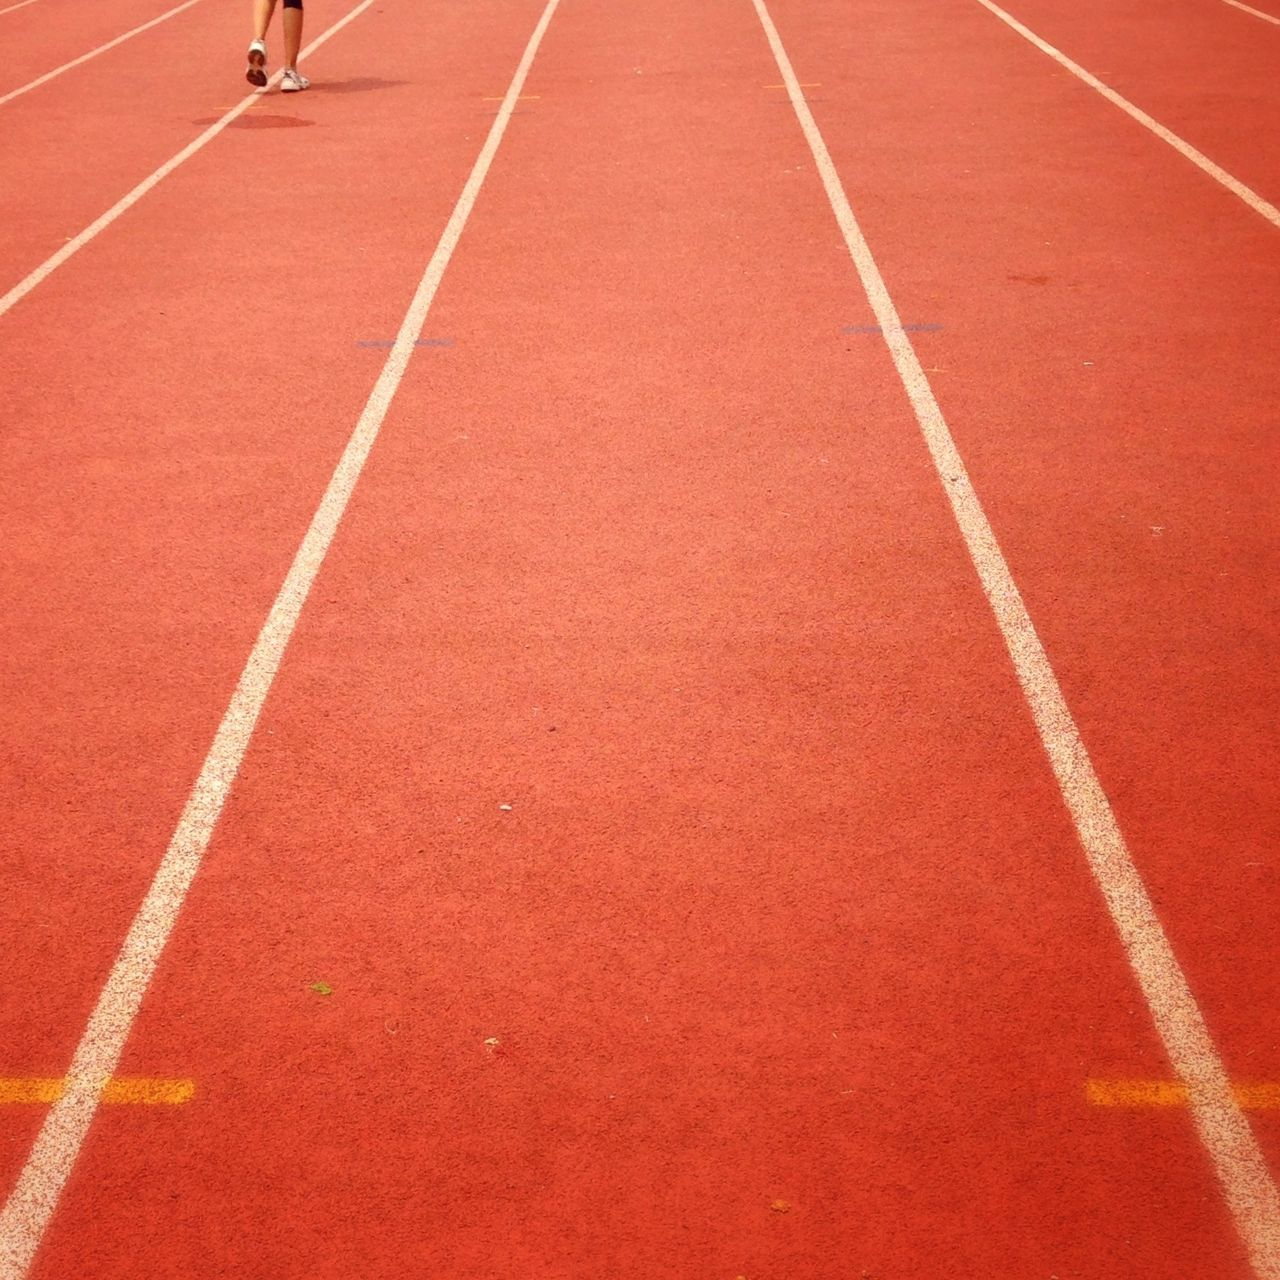 Low section of person on running track